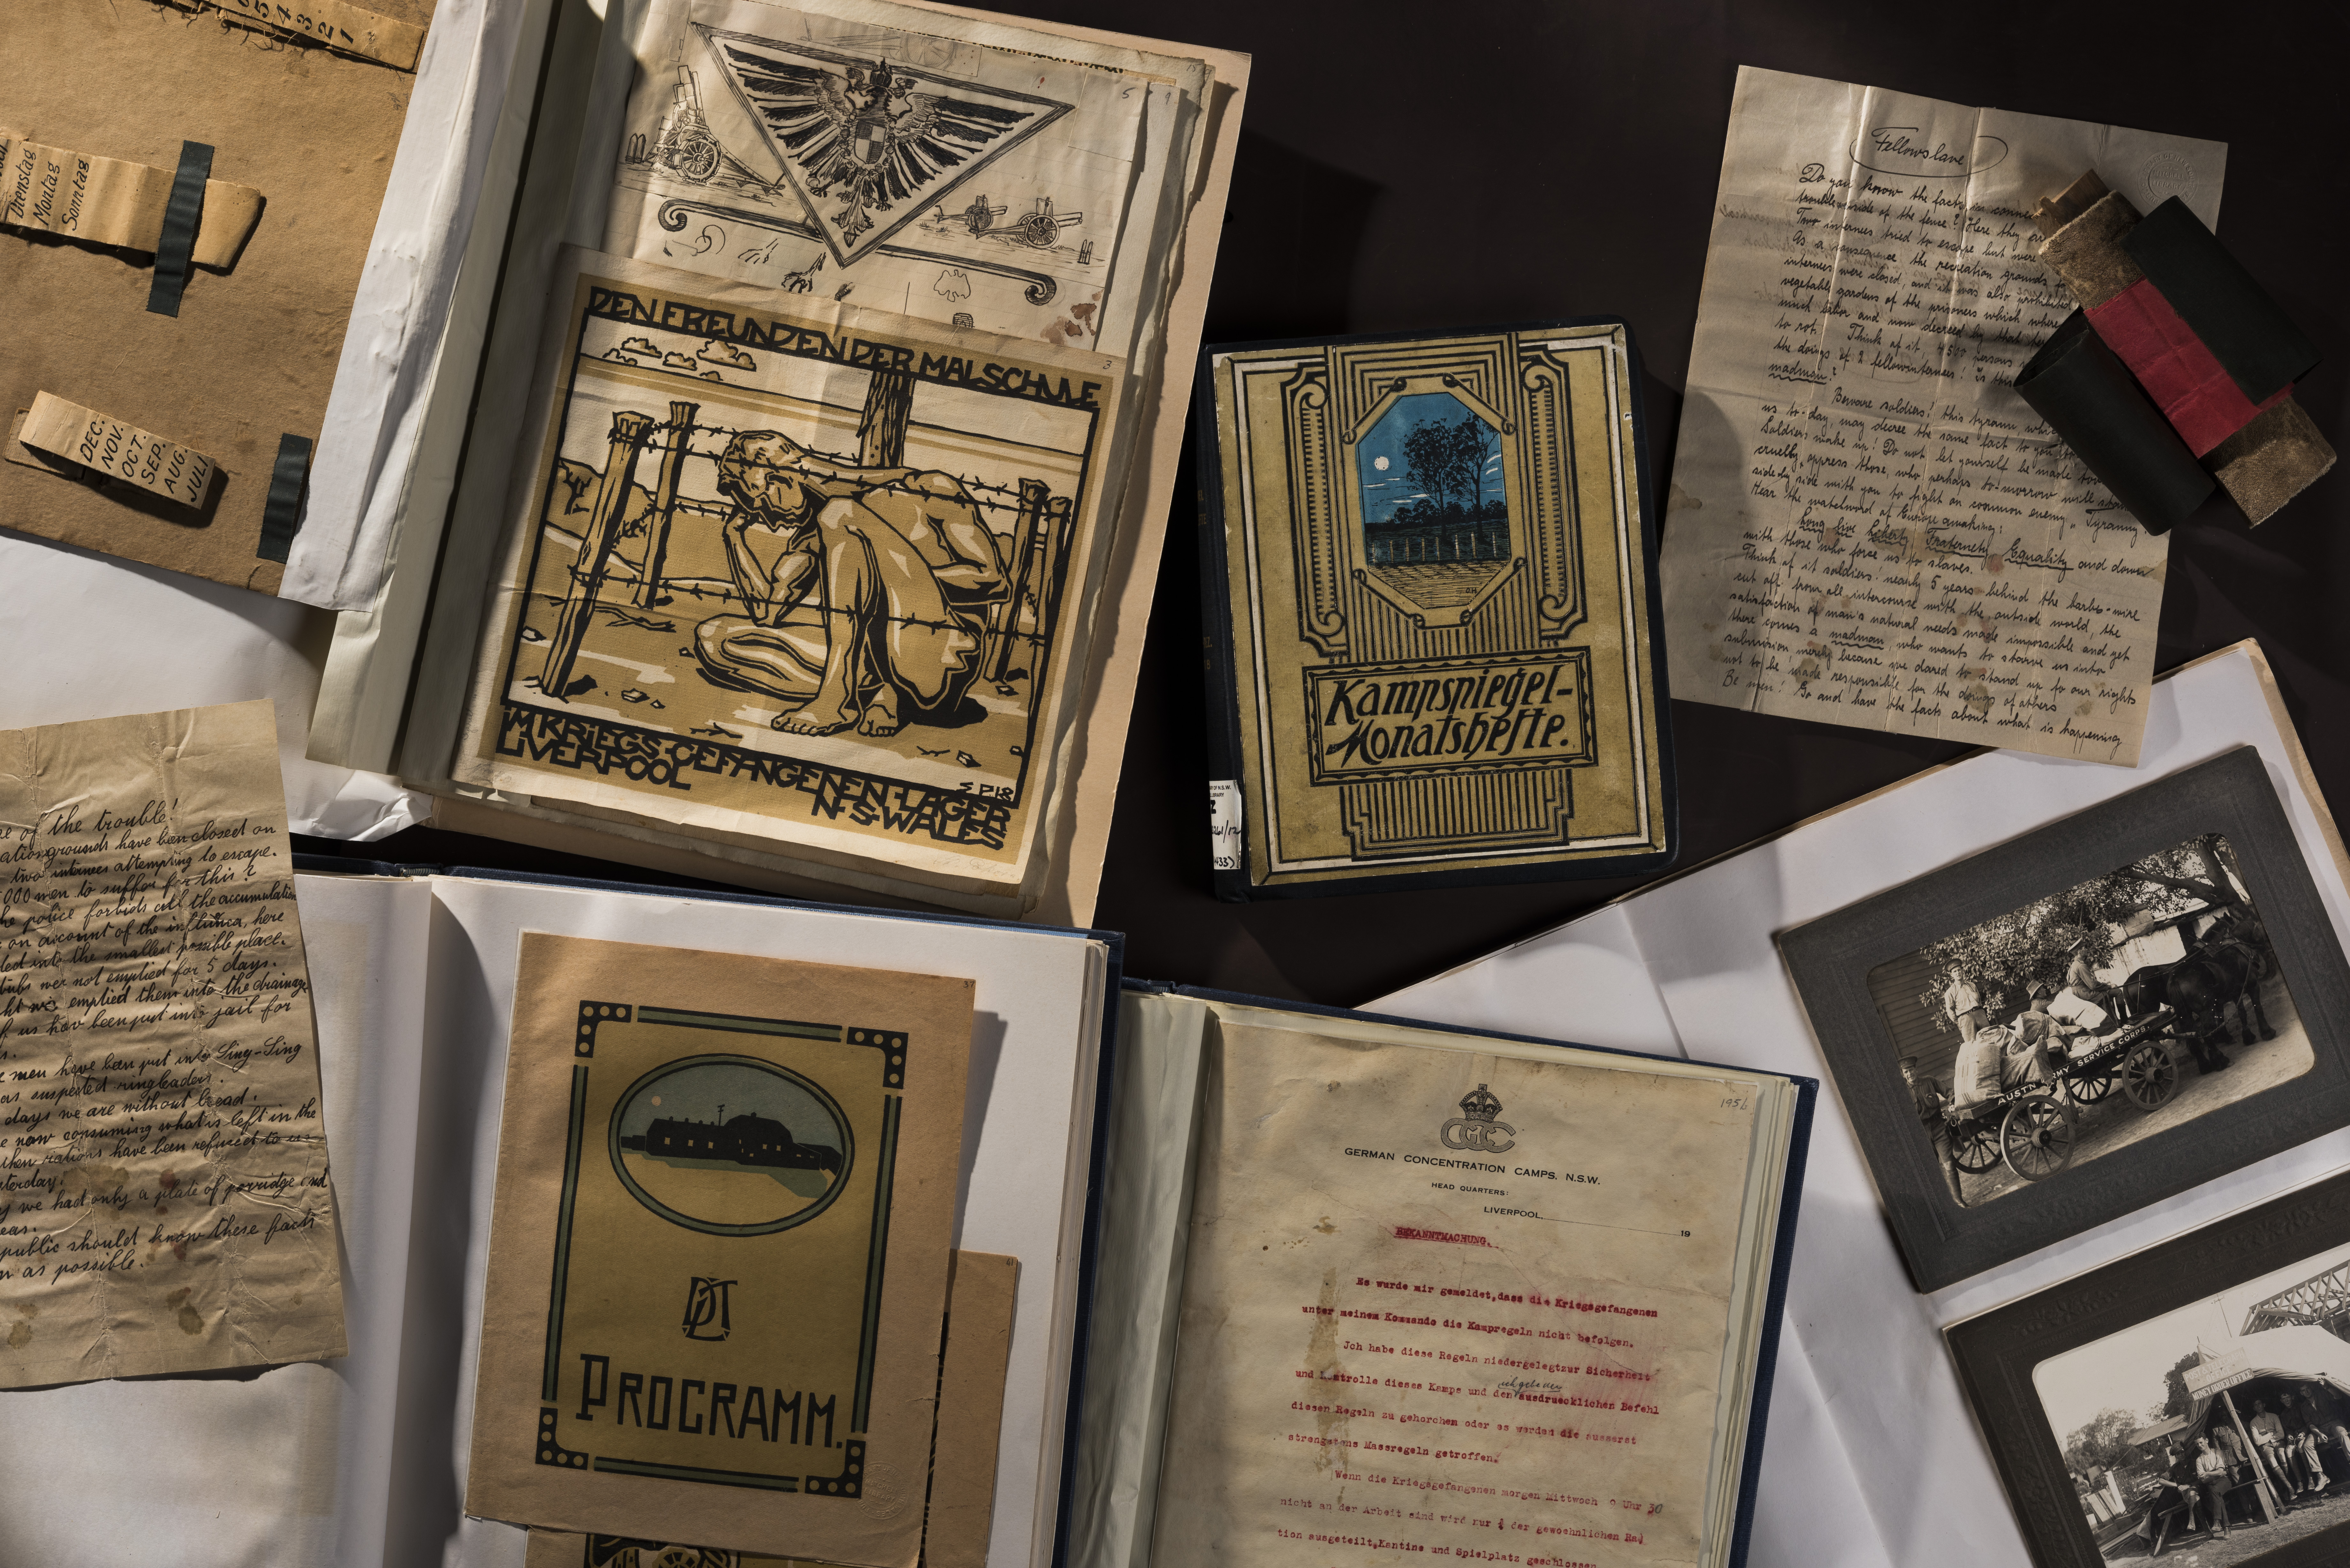 A collection of material created by internees held at the Holsworthy internment camp during the First World War